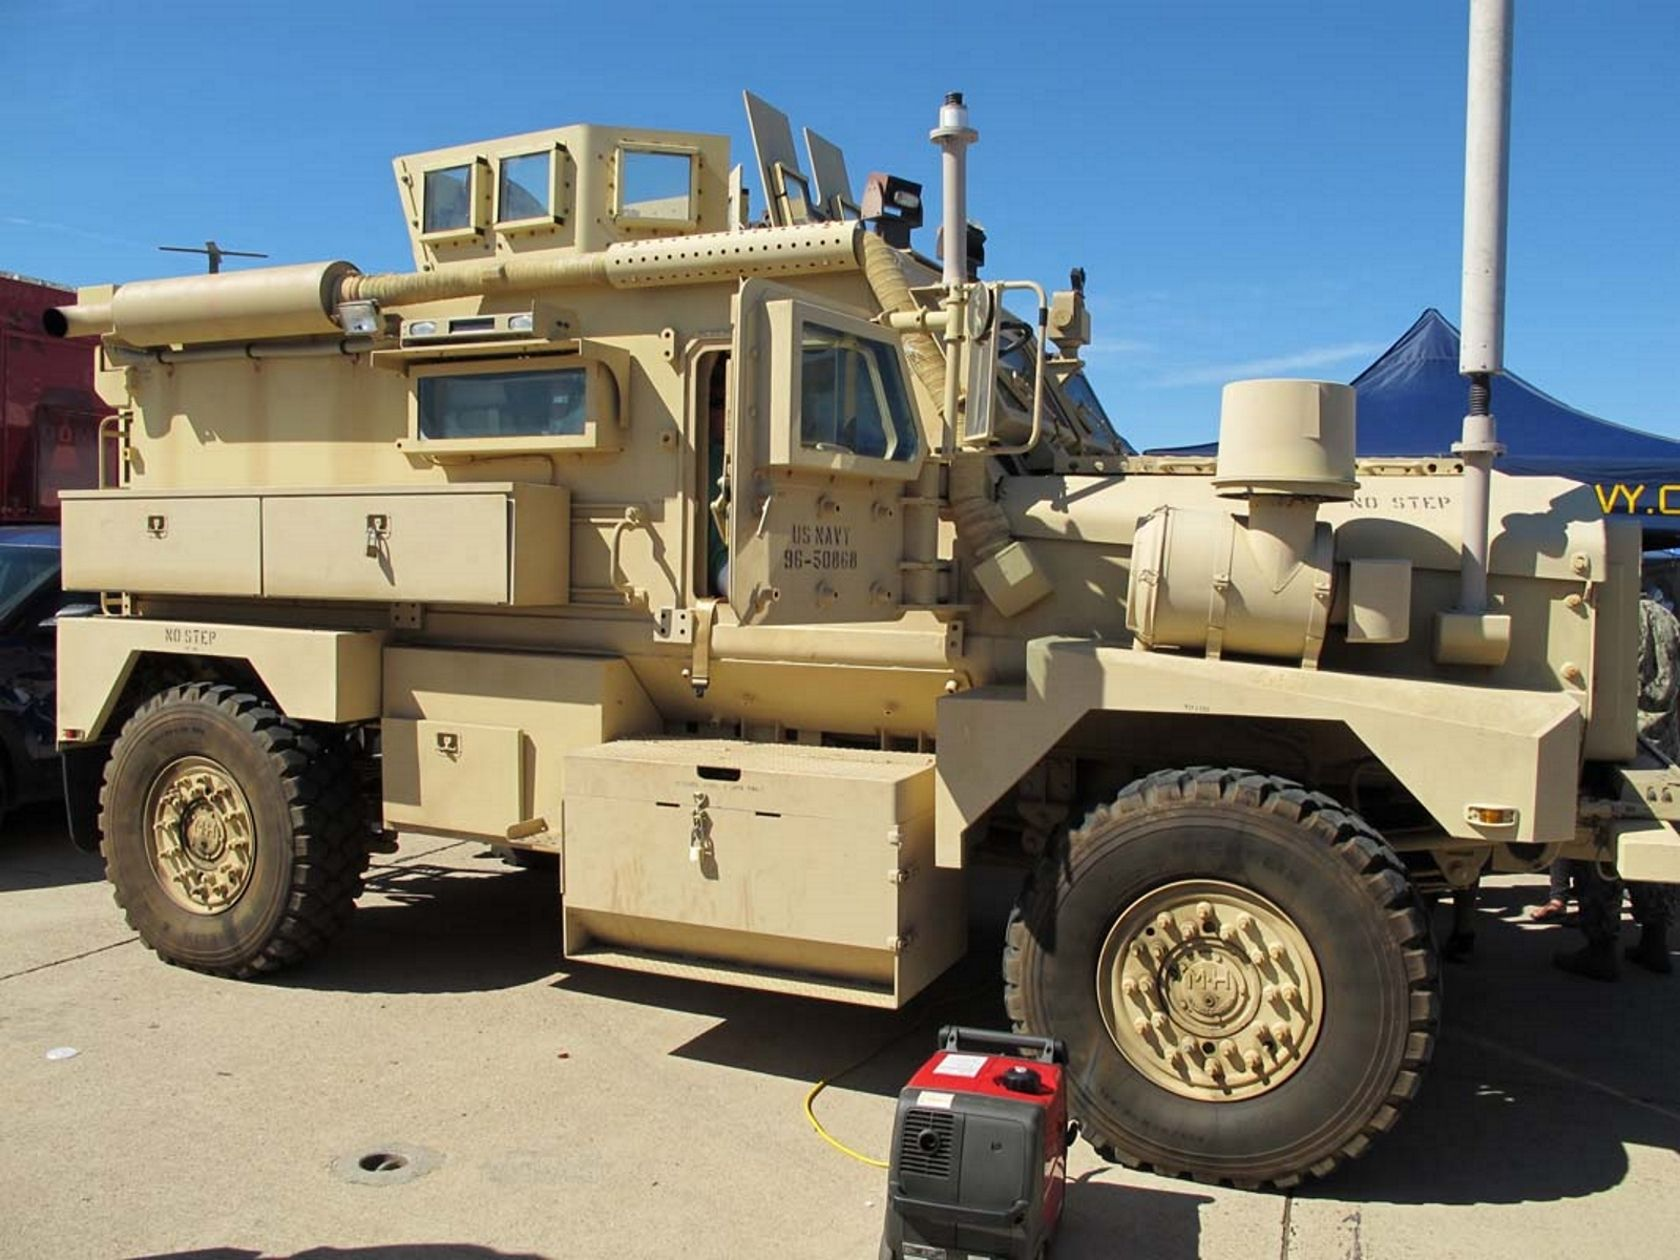 The cougar is an mrap and infantry mobility vehicle structured to be resistant to landmines and